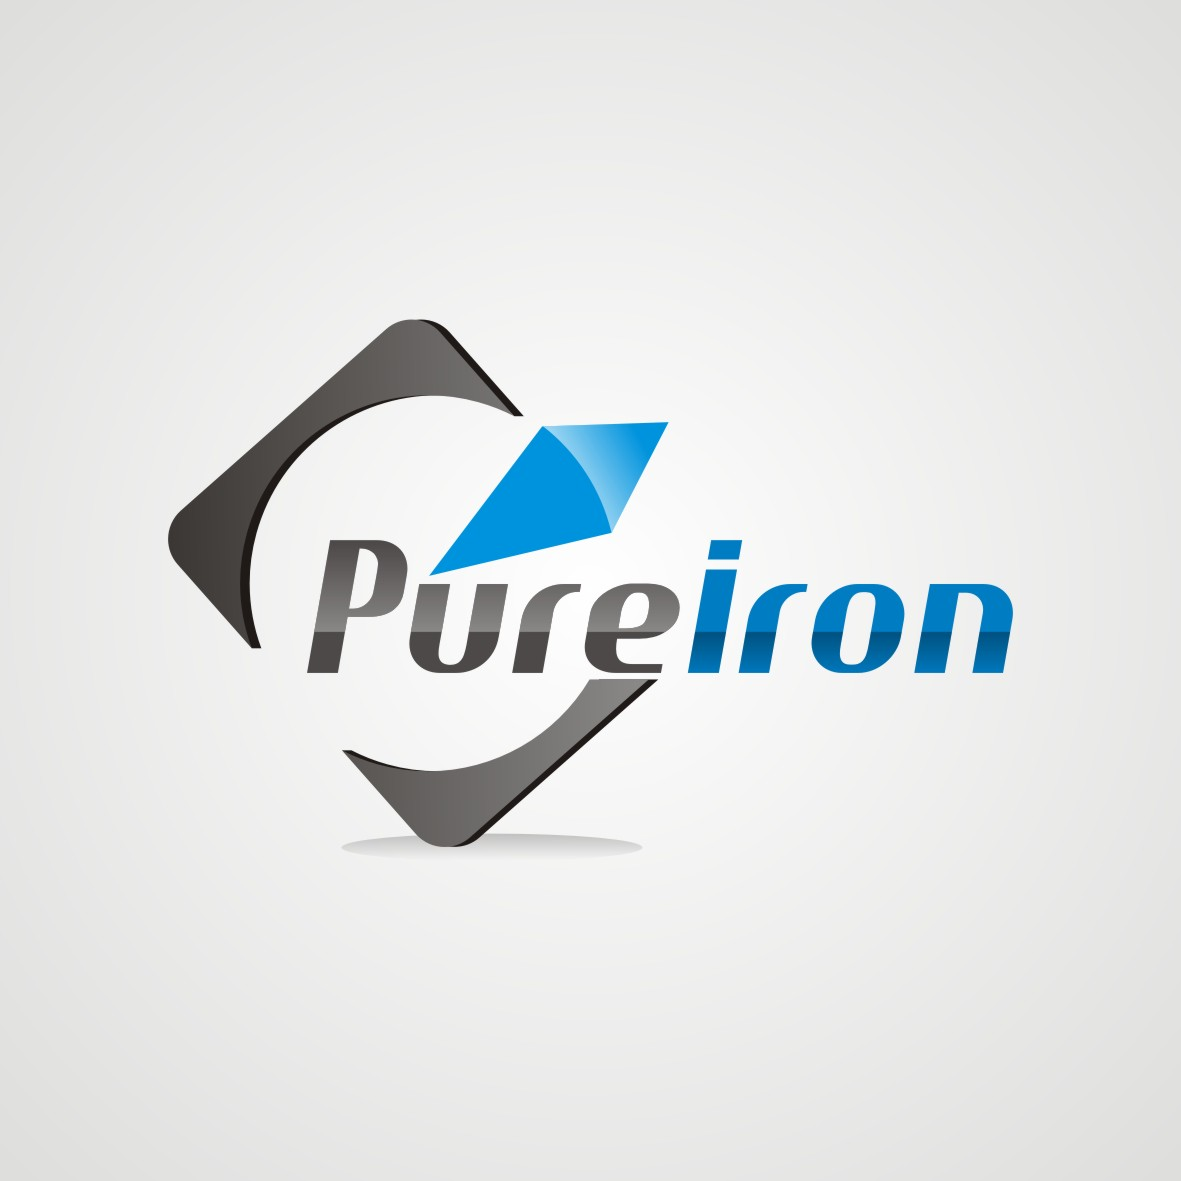 Logo Design by arteo_design - Entry No. 155 in the Logo Design Contest Fun Logo Design for Pure Iron.